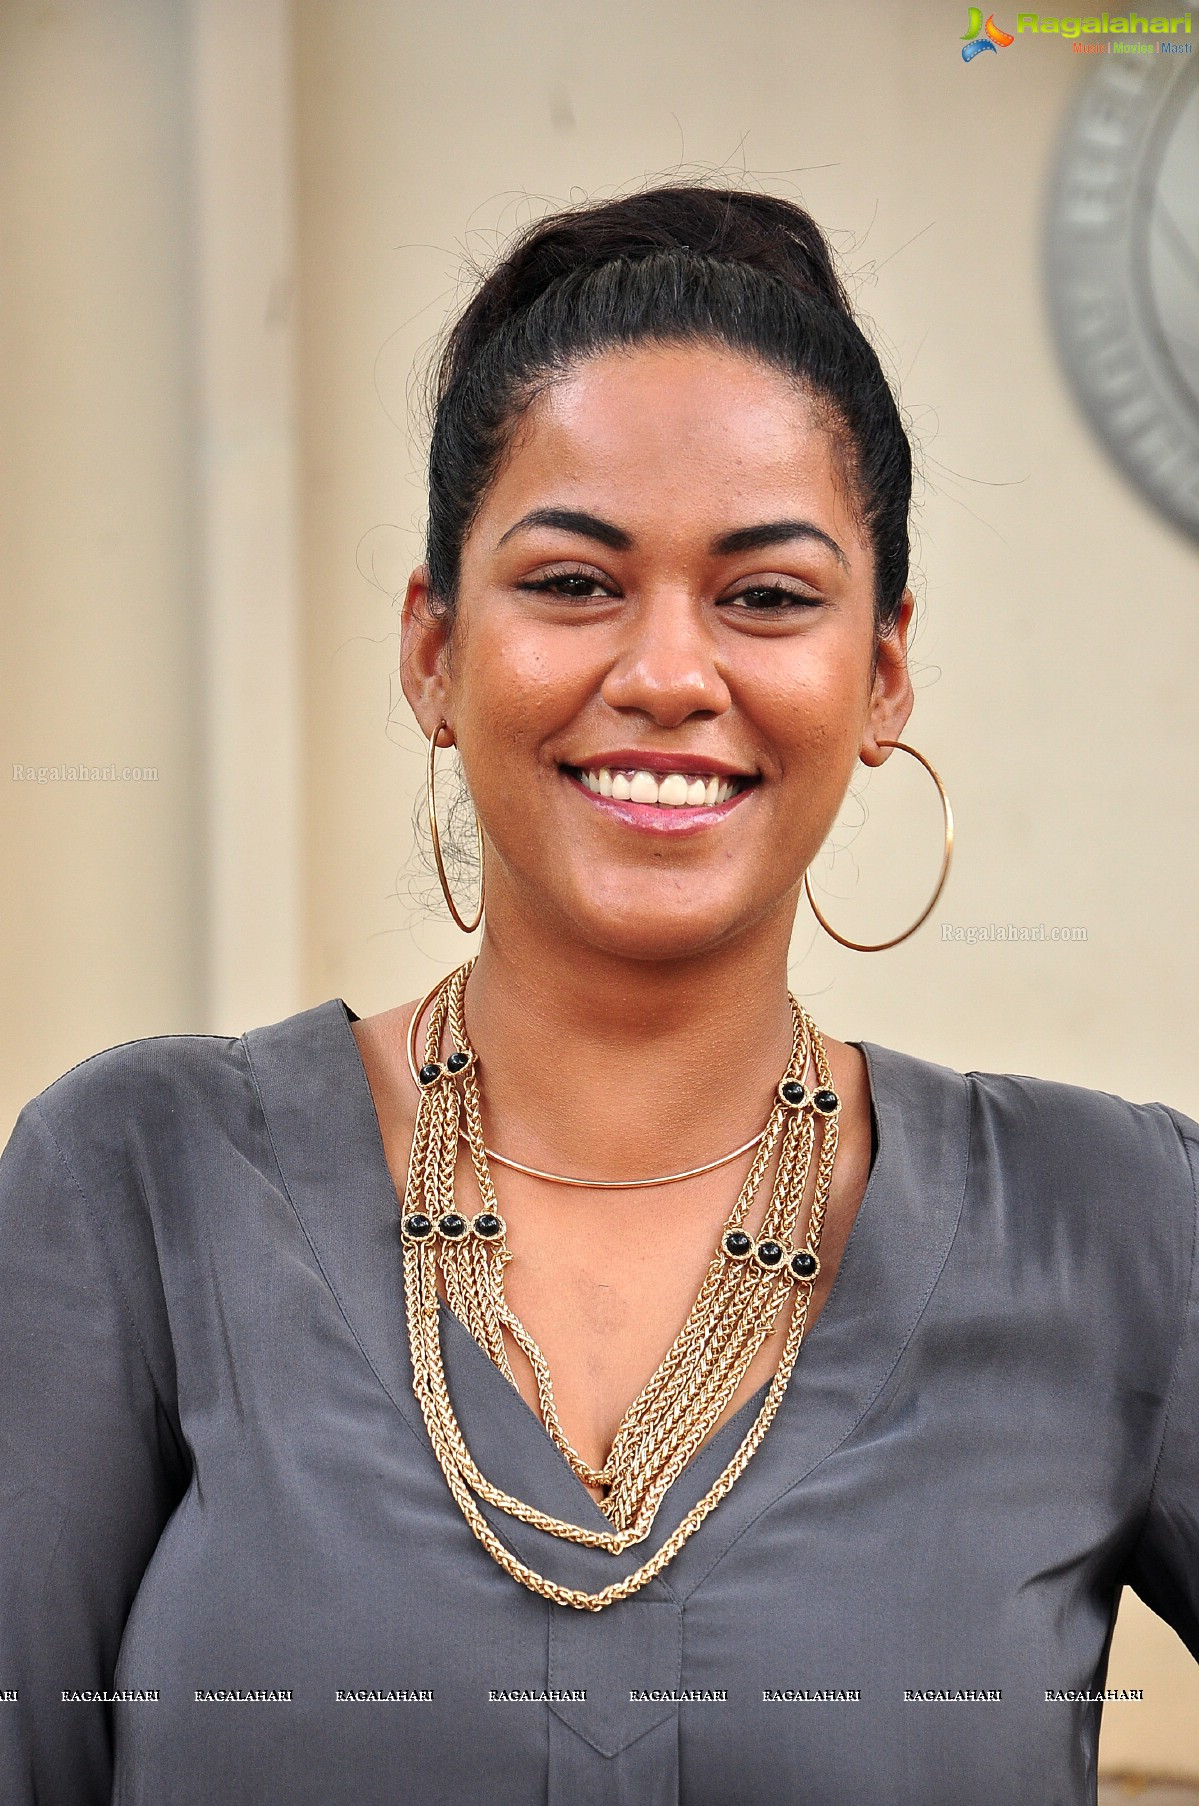 Mumaith Khan Mumaith Khan new picture